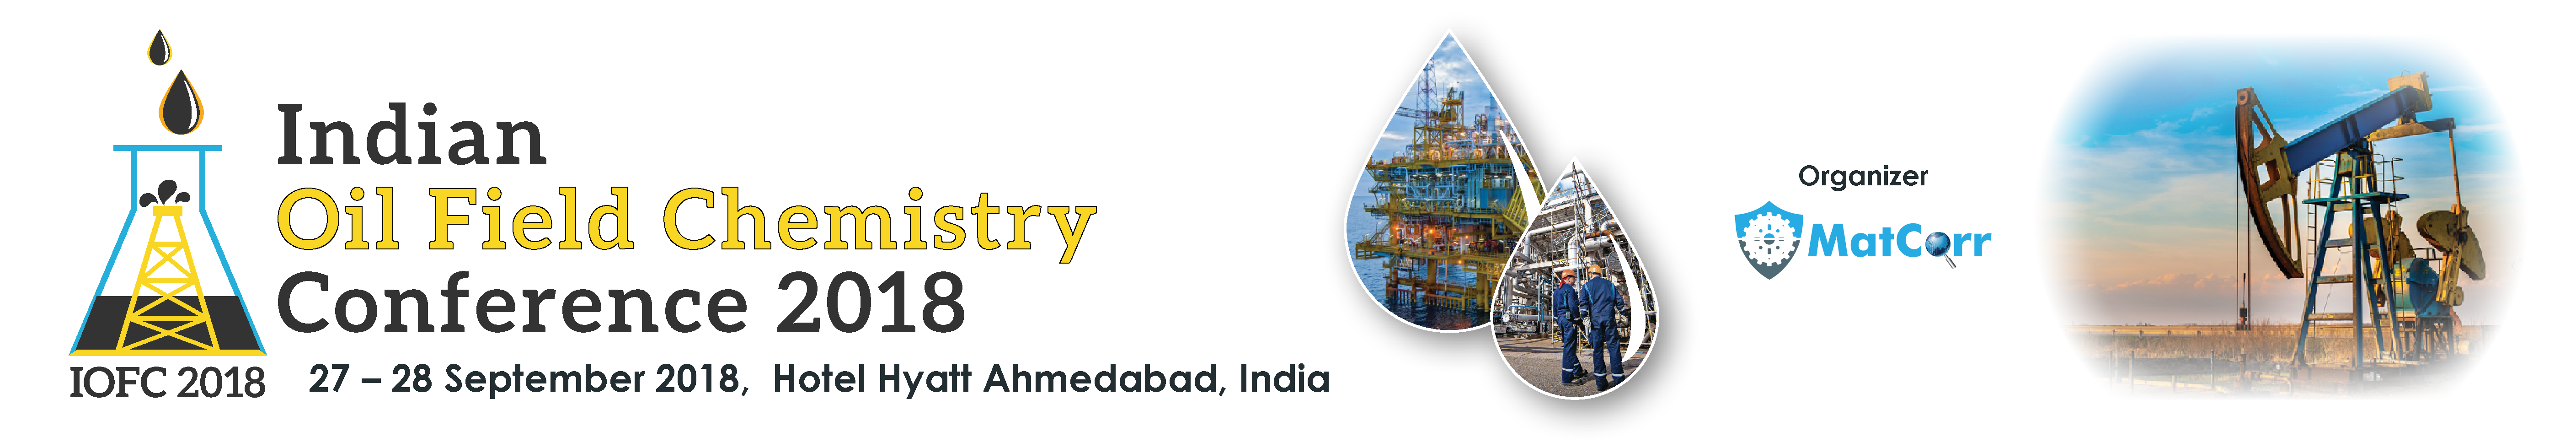 Indian Oil Field Chemistry Conference